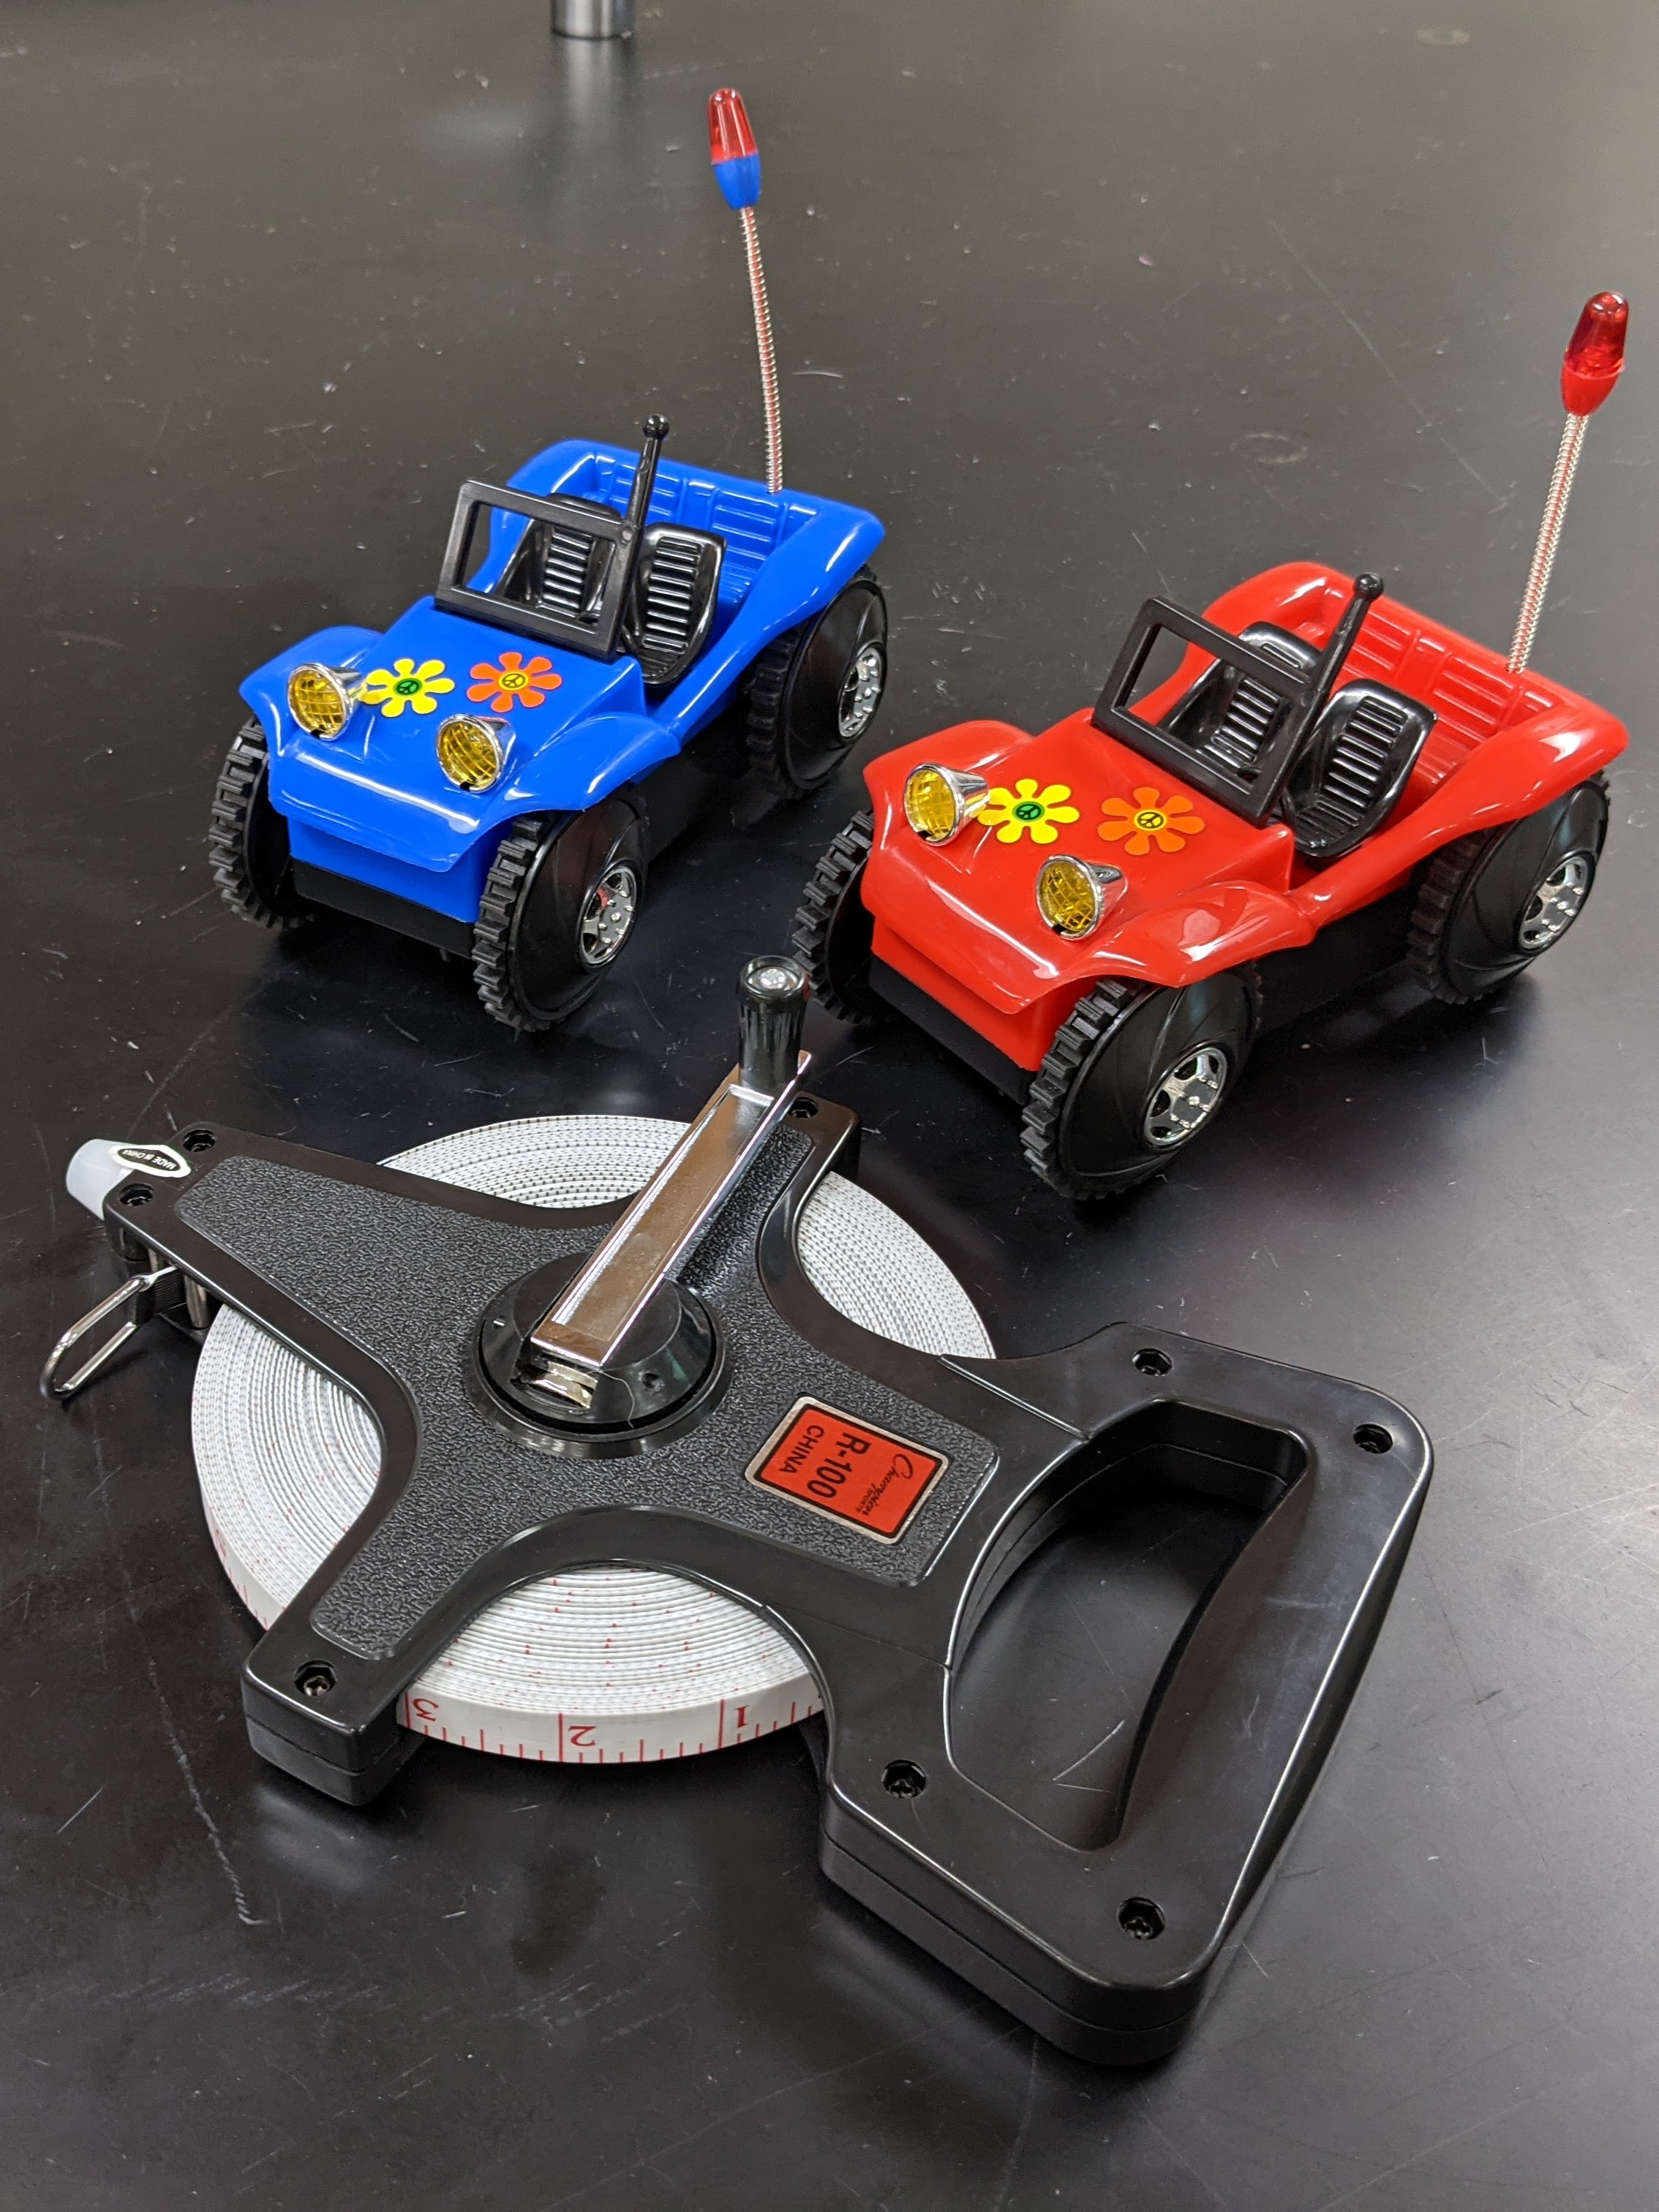 A blue tumble buggy and a red tumble buggy sitting next to a measuring tape